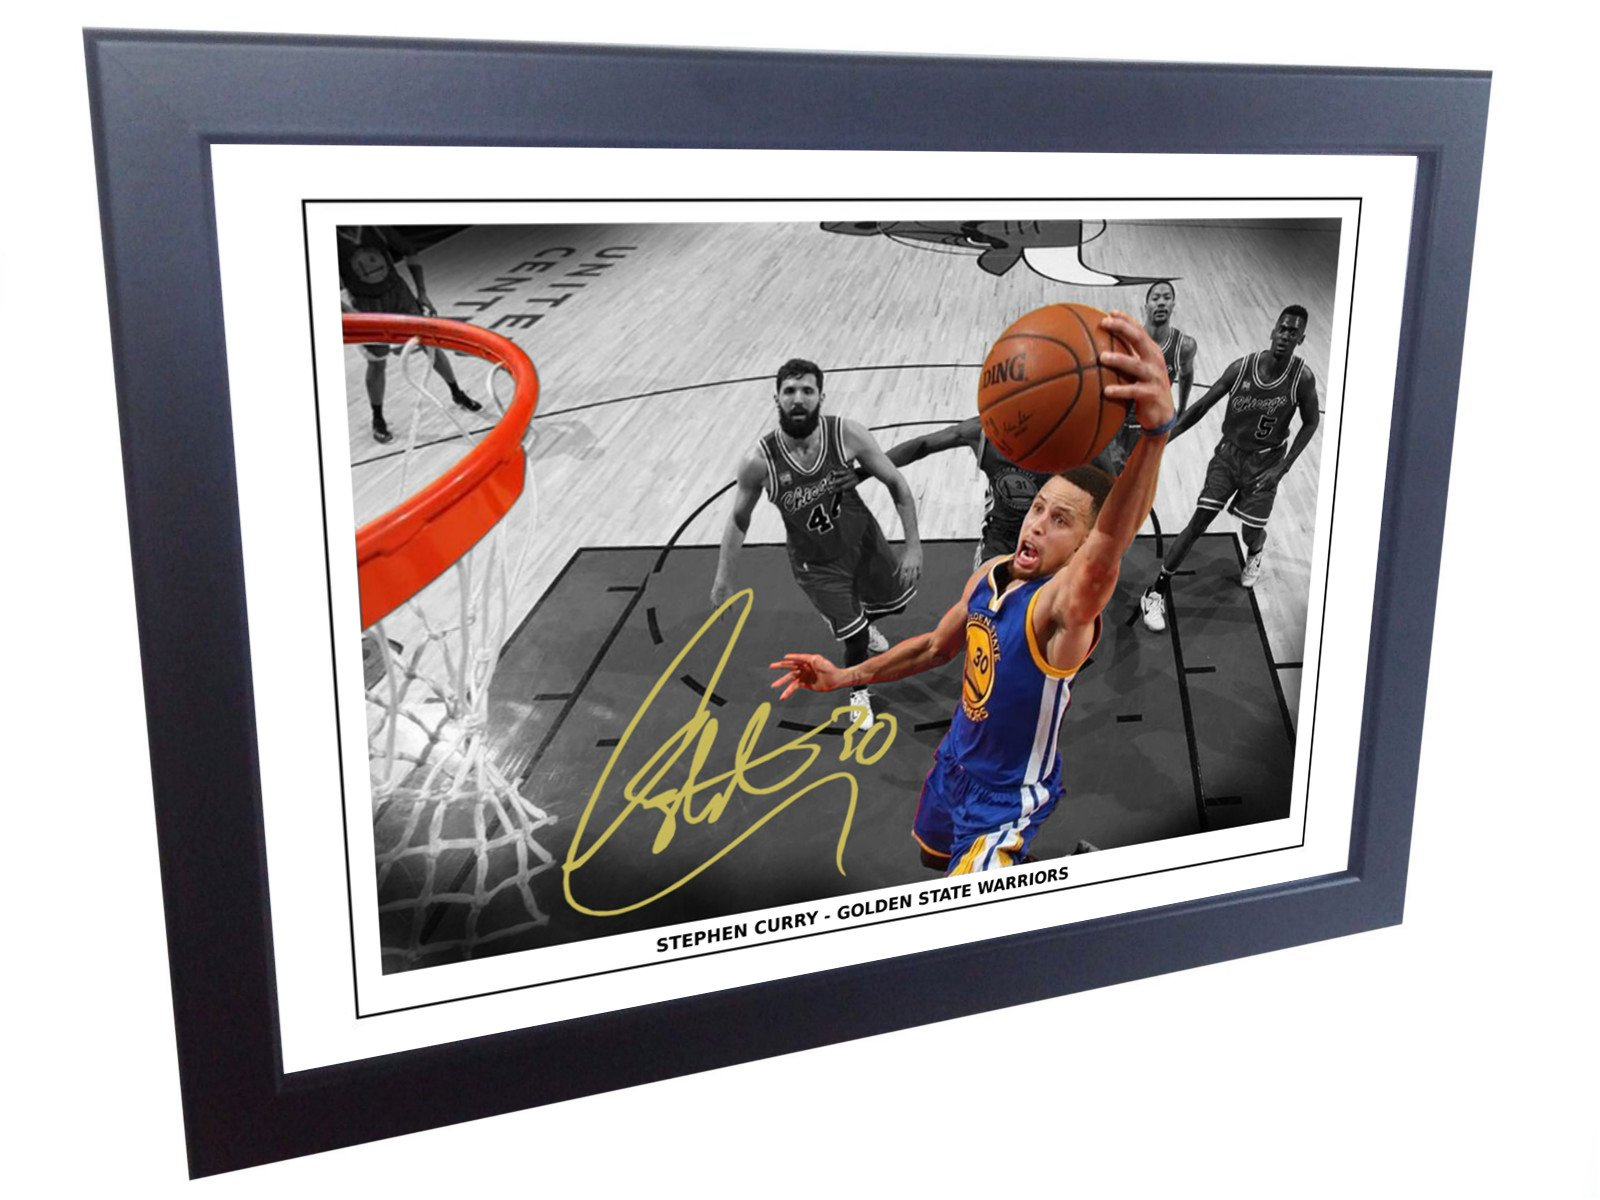 12x8 A4 Signed Stephen Curry Golden State Warriors Autographed Basketball Photo Photograph Picture Frame Gift